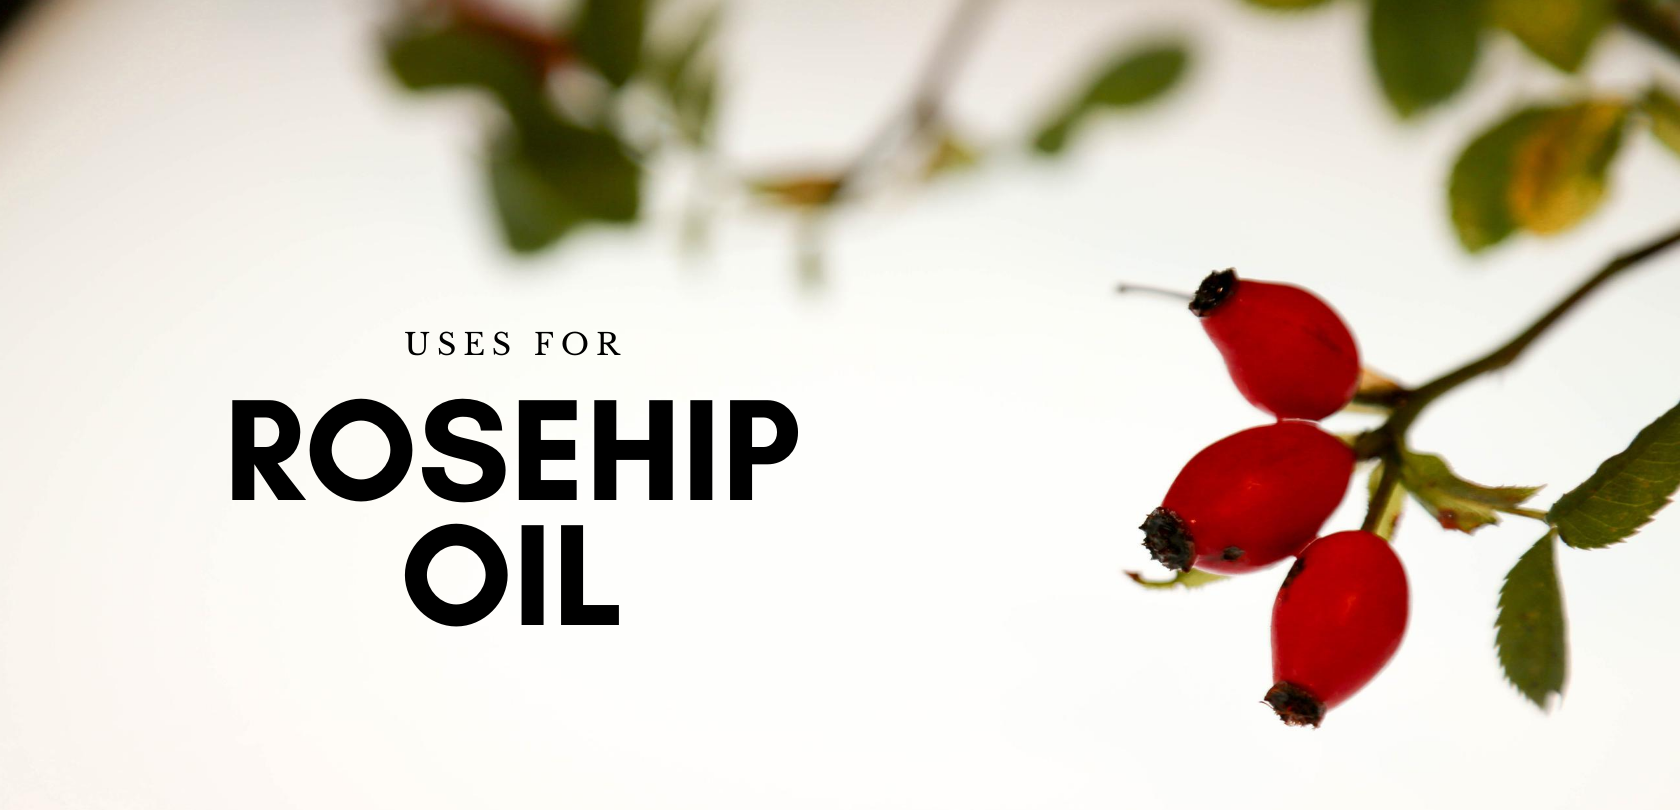 Uses For Rosehip Oil